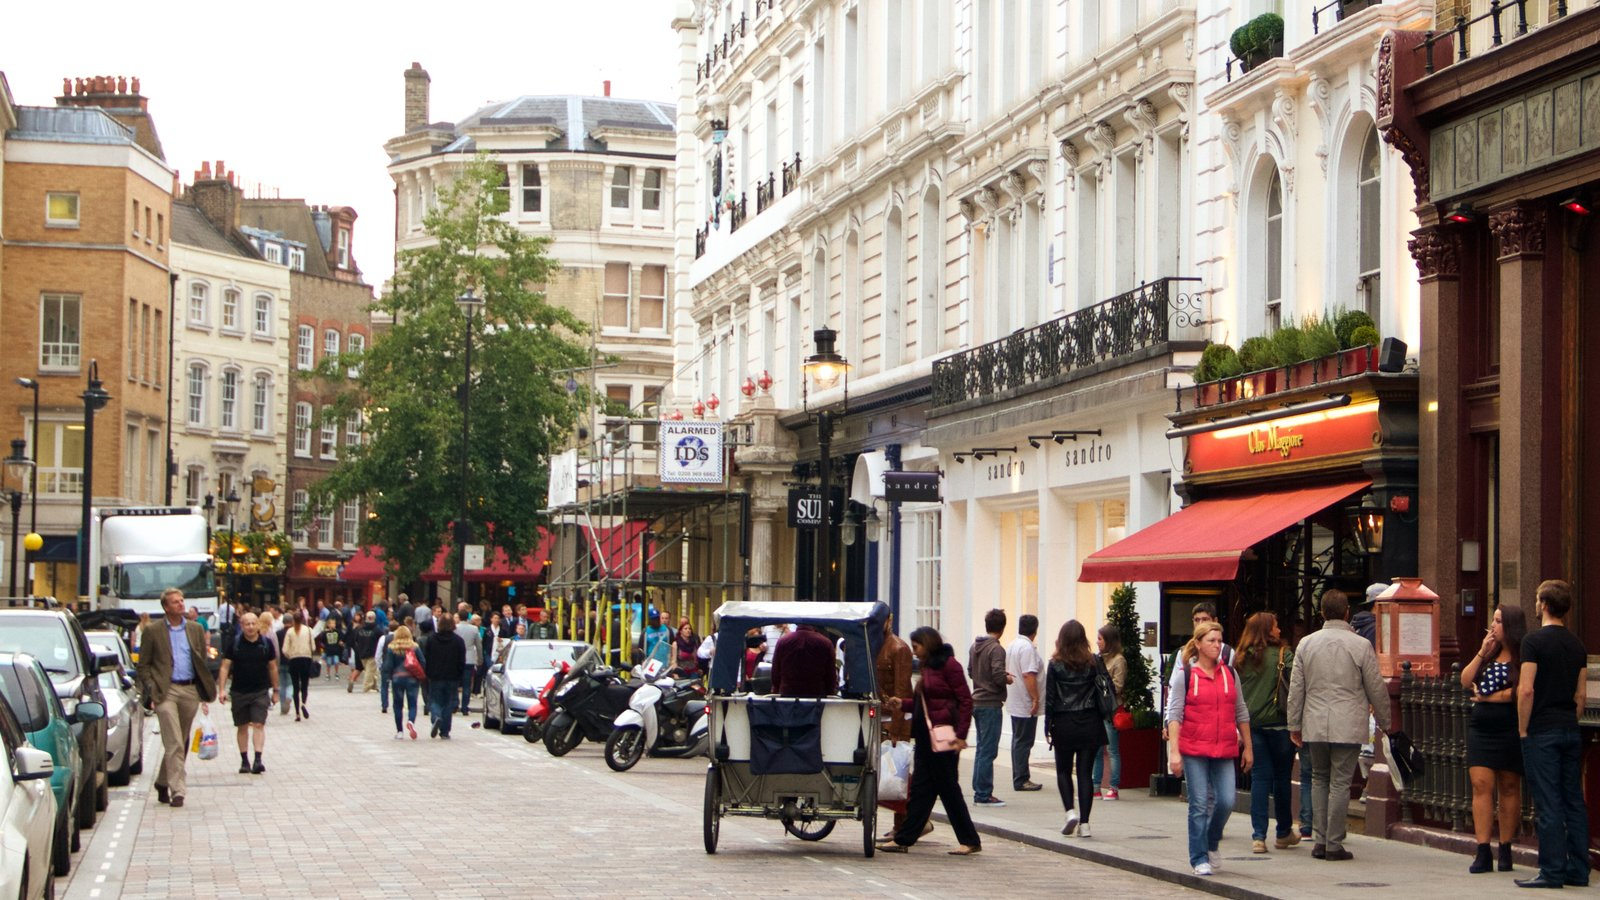 Covent Garden showing street scenes, shopping and heritage architecture